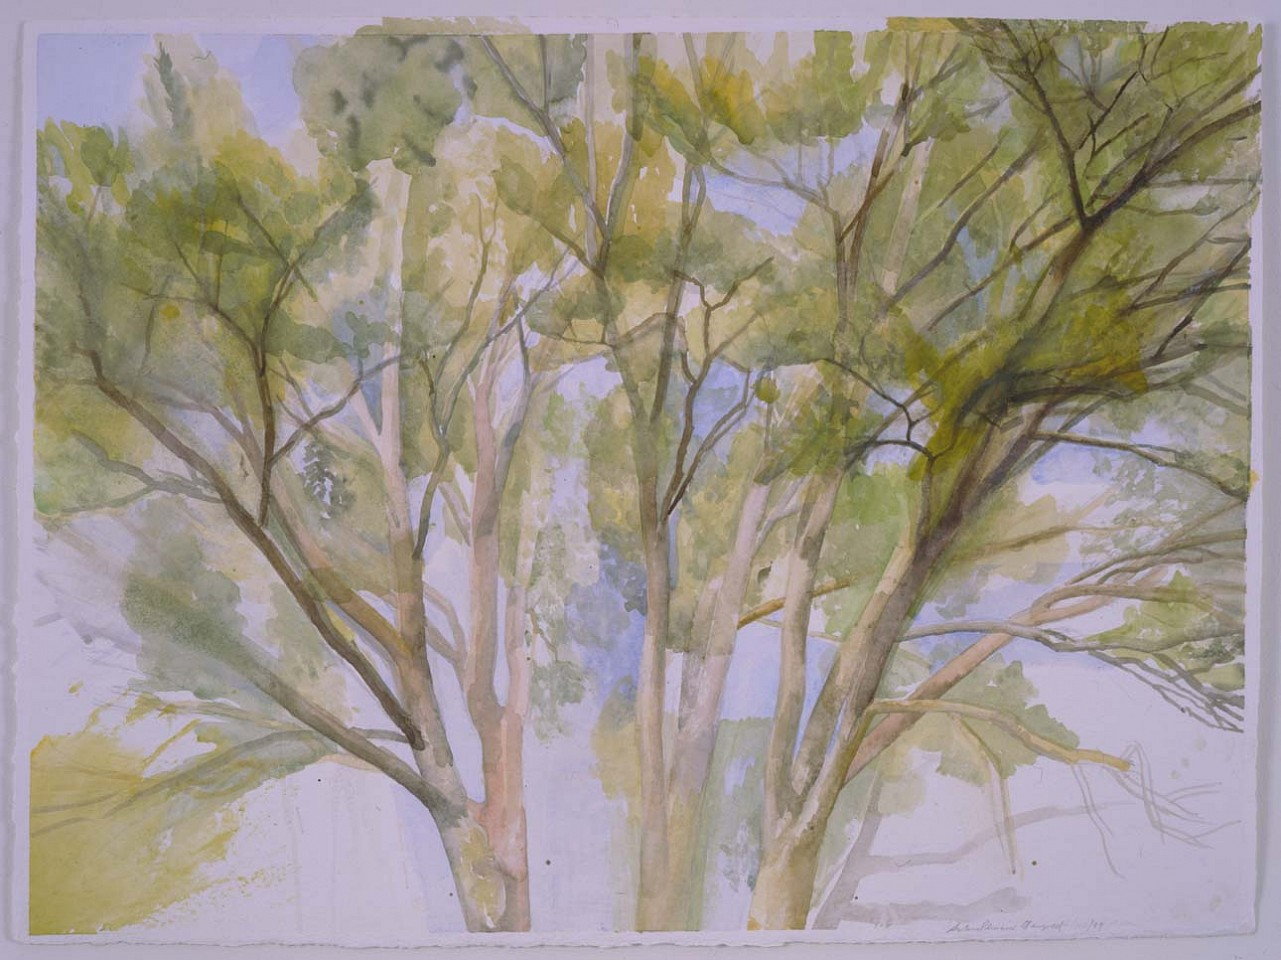 Sylvia Plimack Mangold ,   The Pin Oak 9/20/99  ,  1999     watercolor     22 ¼ x 30 ¼ in/56.6 x 77 cm     SPM-99-DR-267